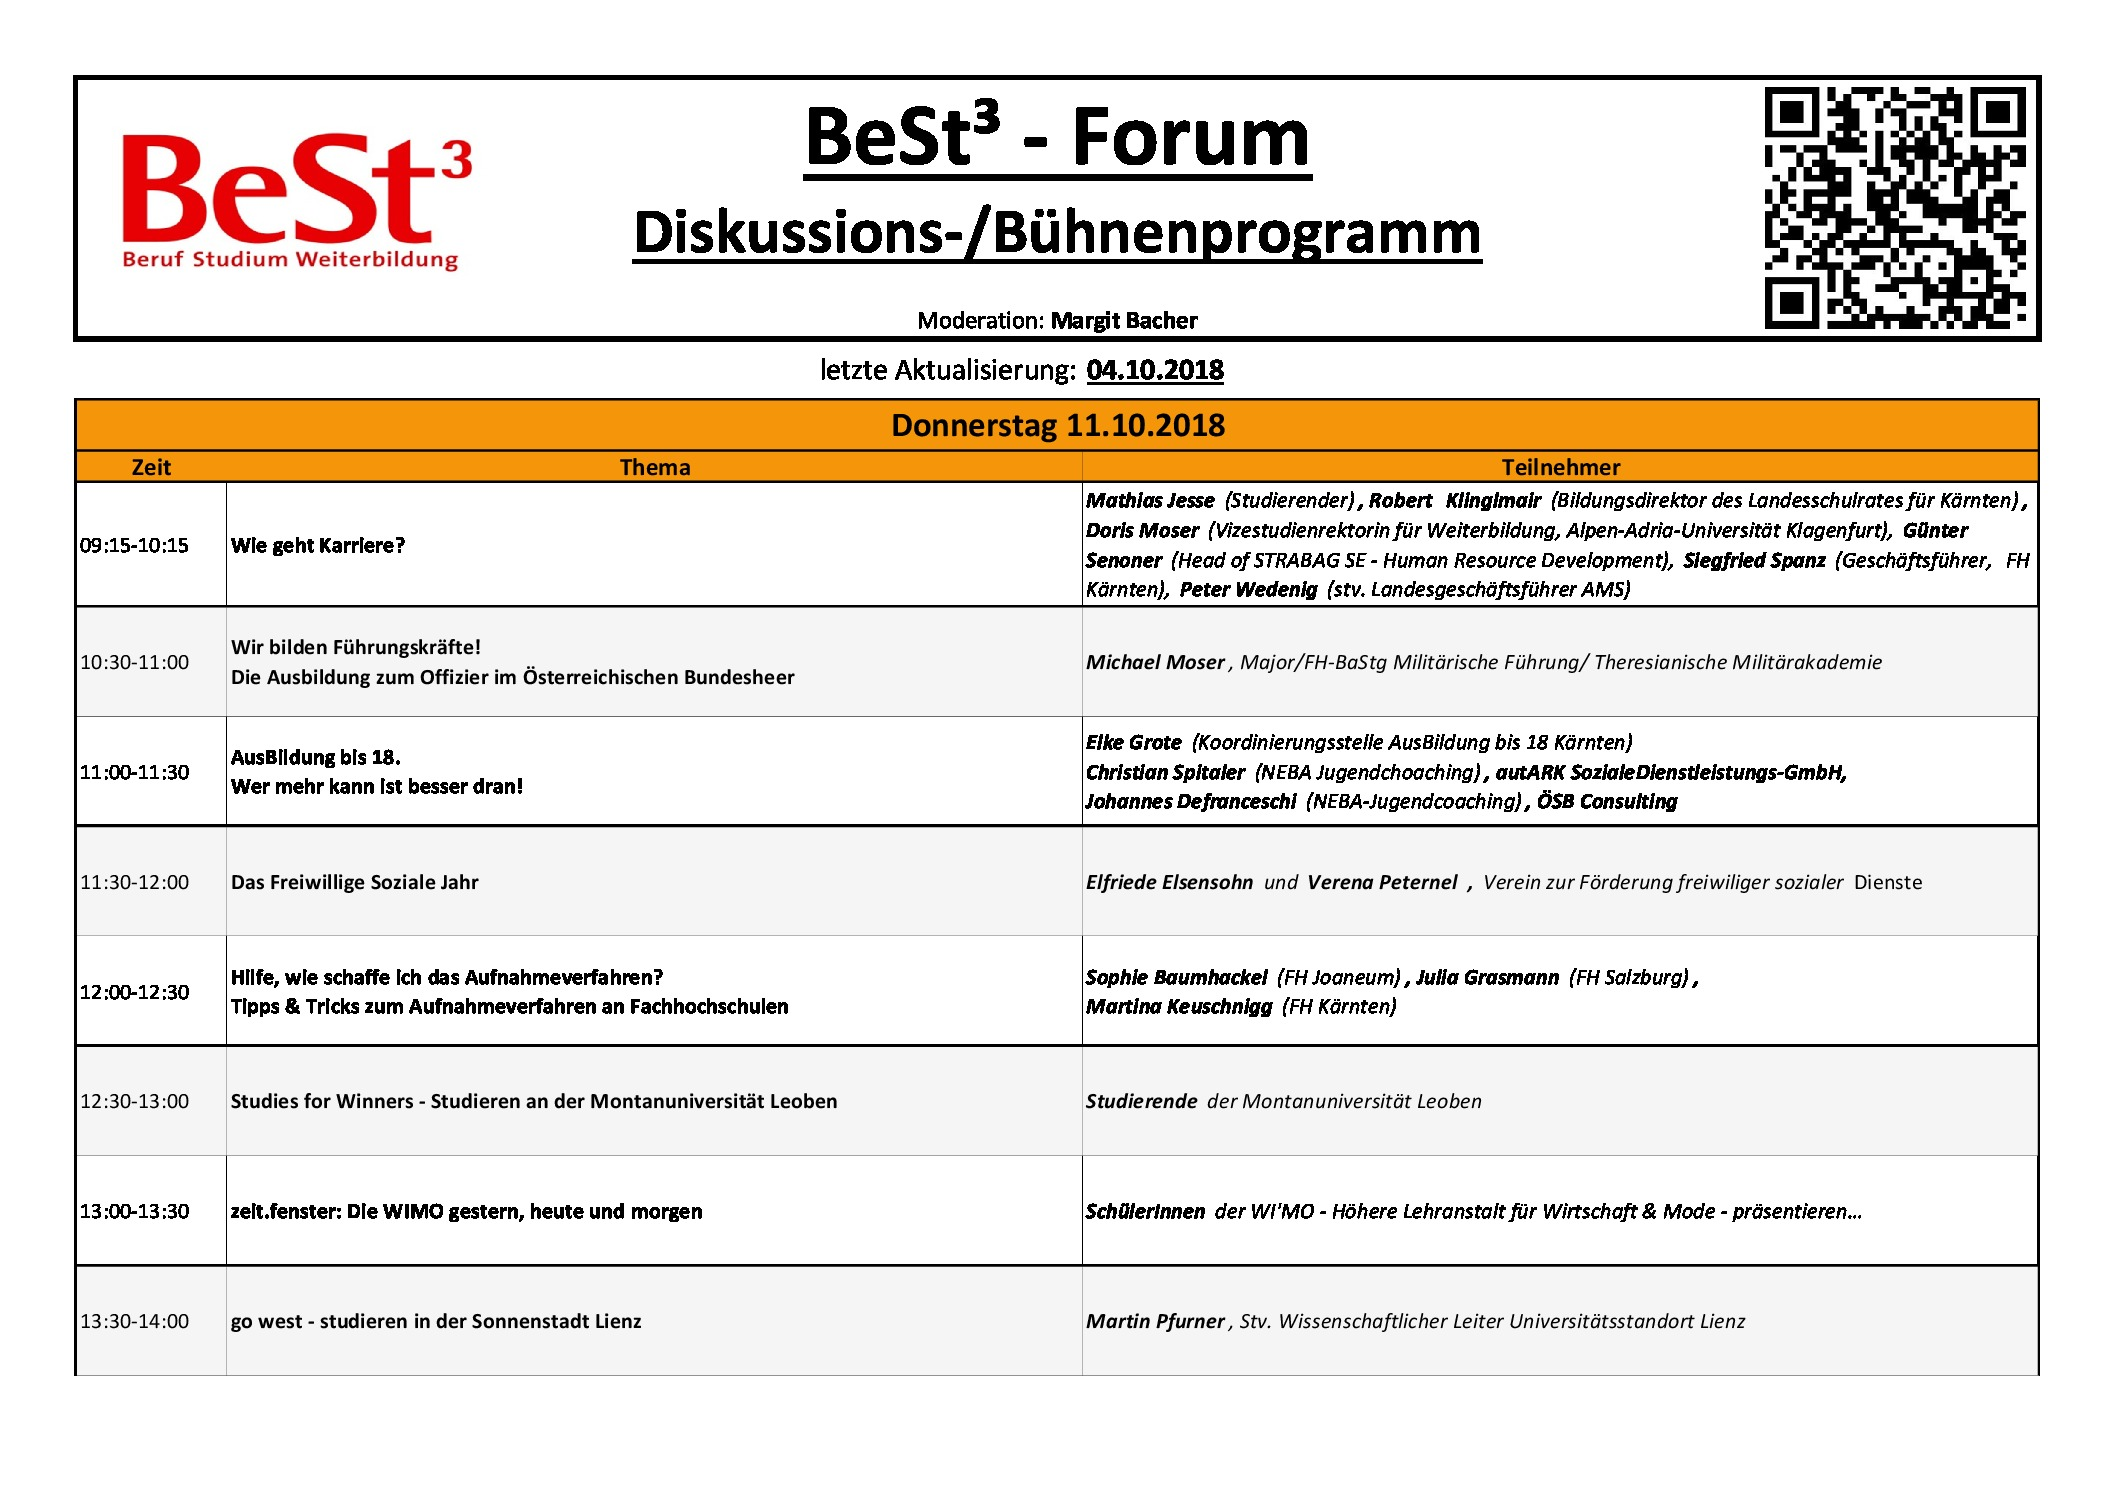 thumbnail of BeSt-Forum_Programm_2018-1